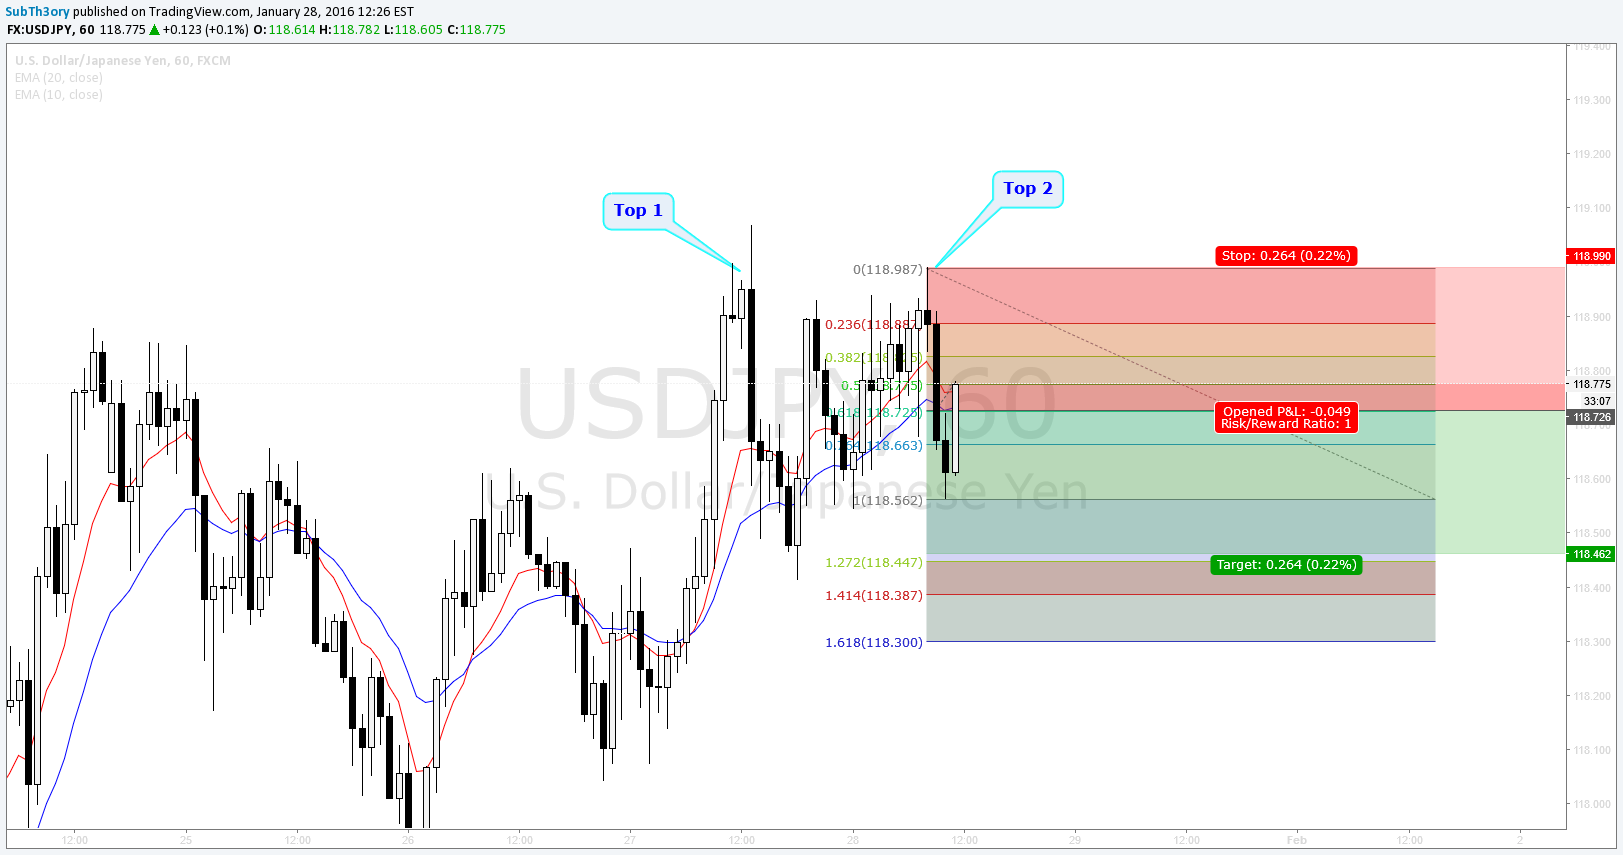 2618 Trade Strategy Test 1 for FX:USDJPY by SubTh3ory — TradingView